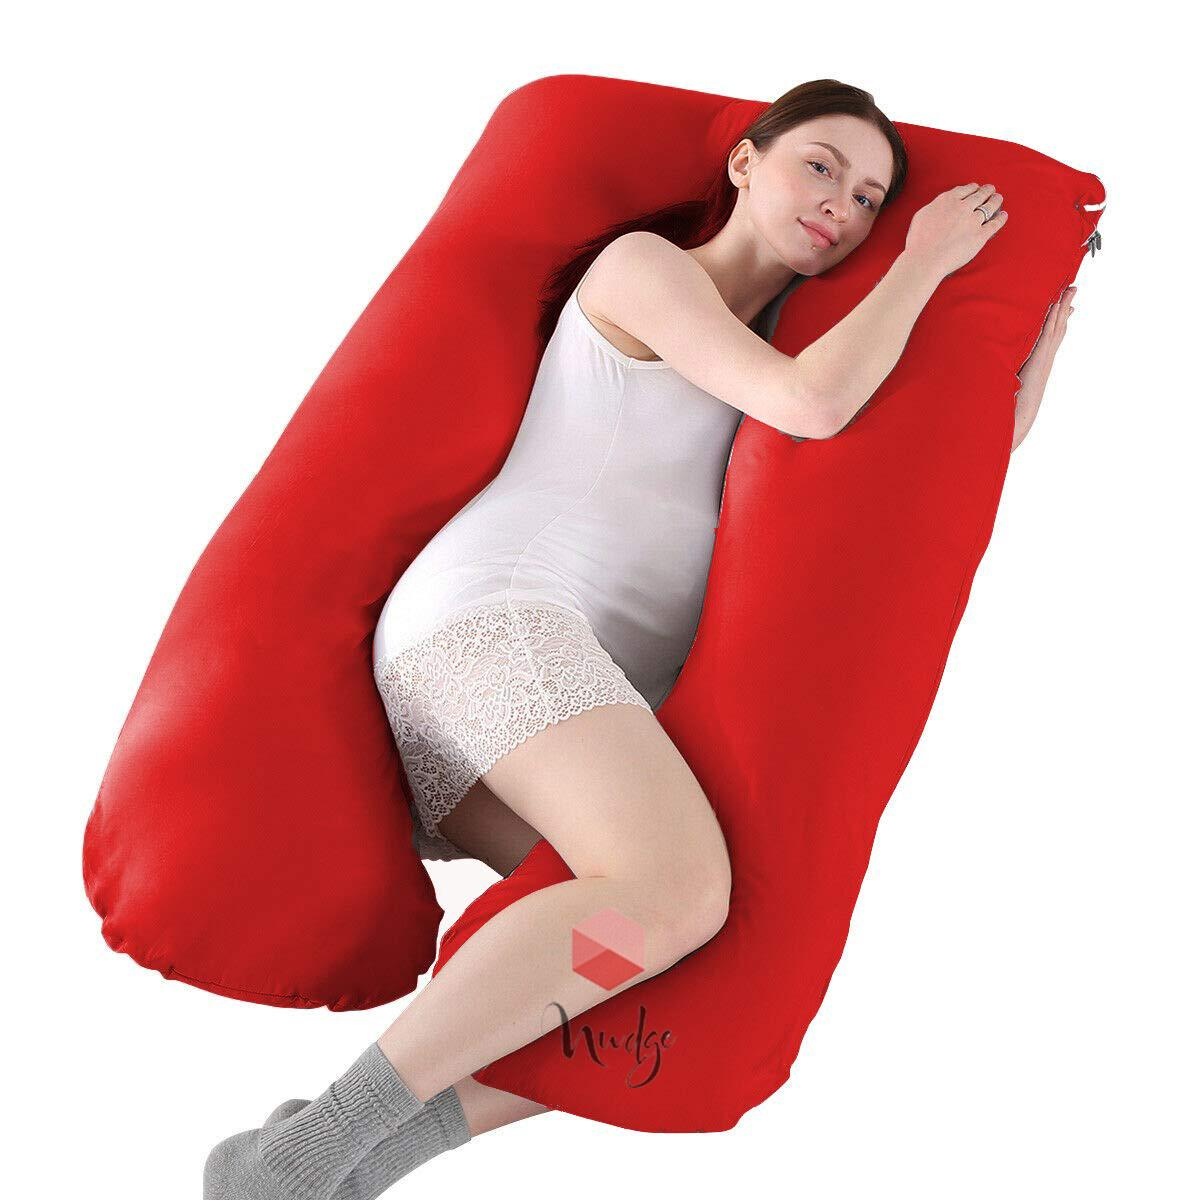 Nudge Premium Pregnancy Pillow - U Shaped Pillow With 100% Cotton Zippered Cover For Pregnant Women(Red)